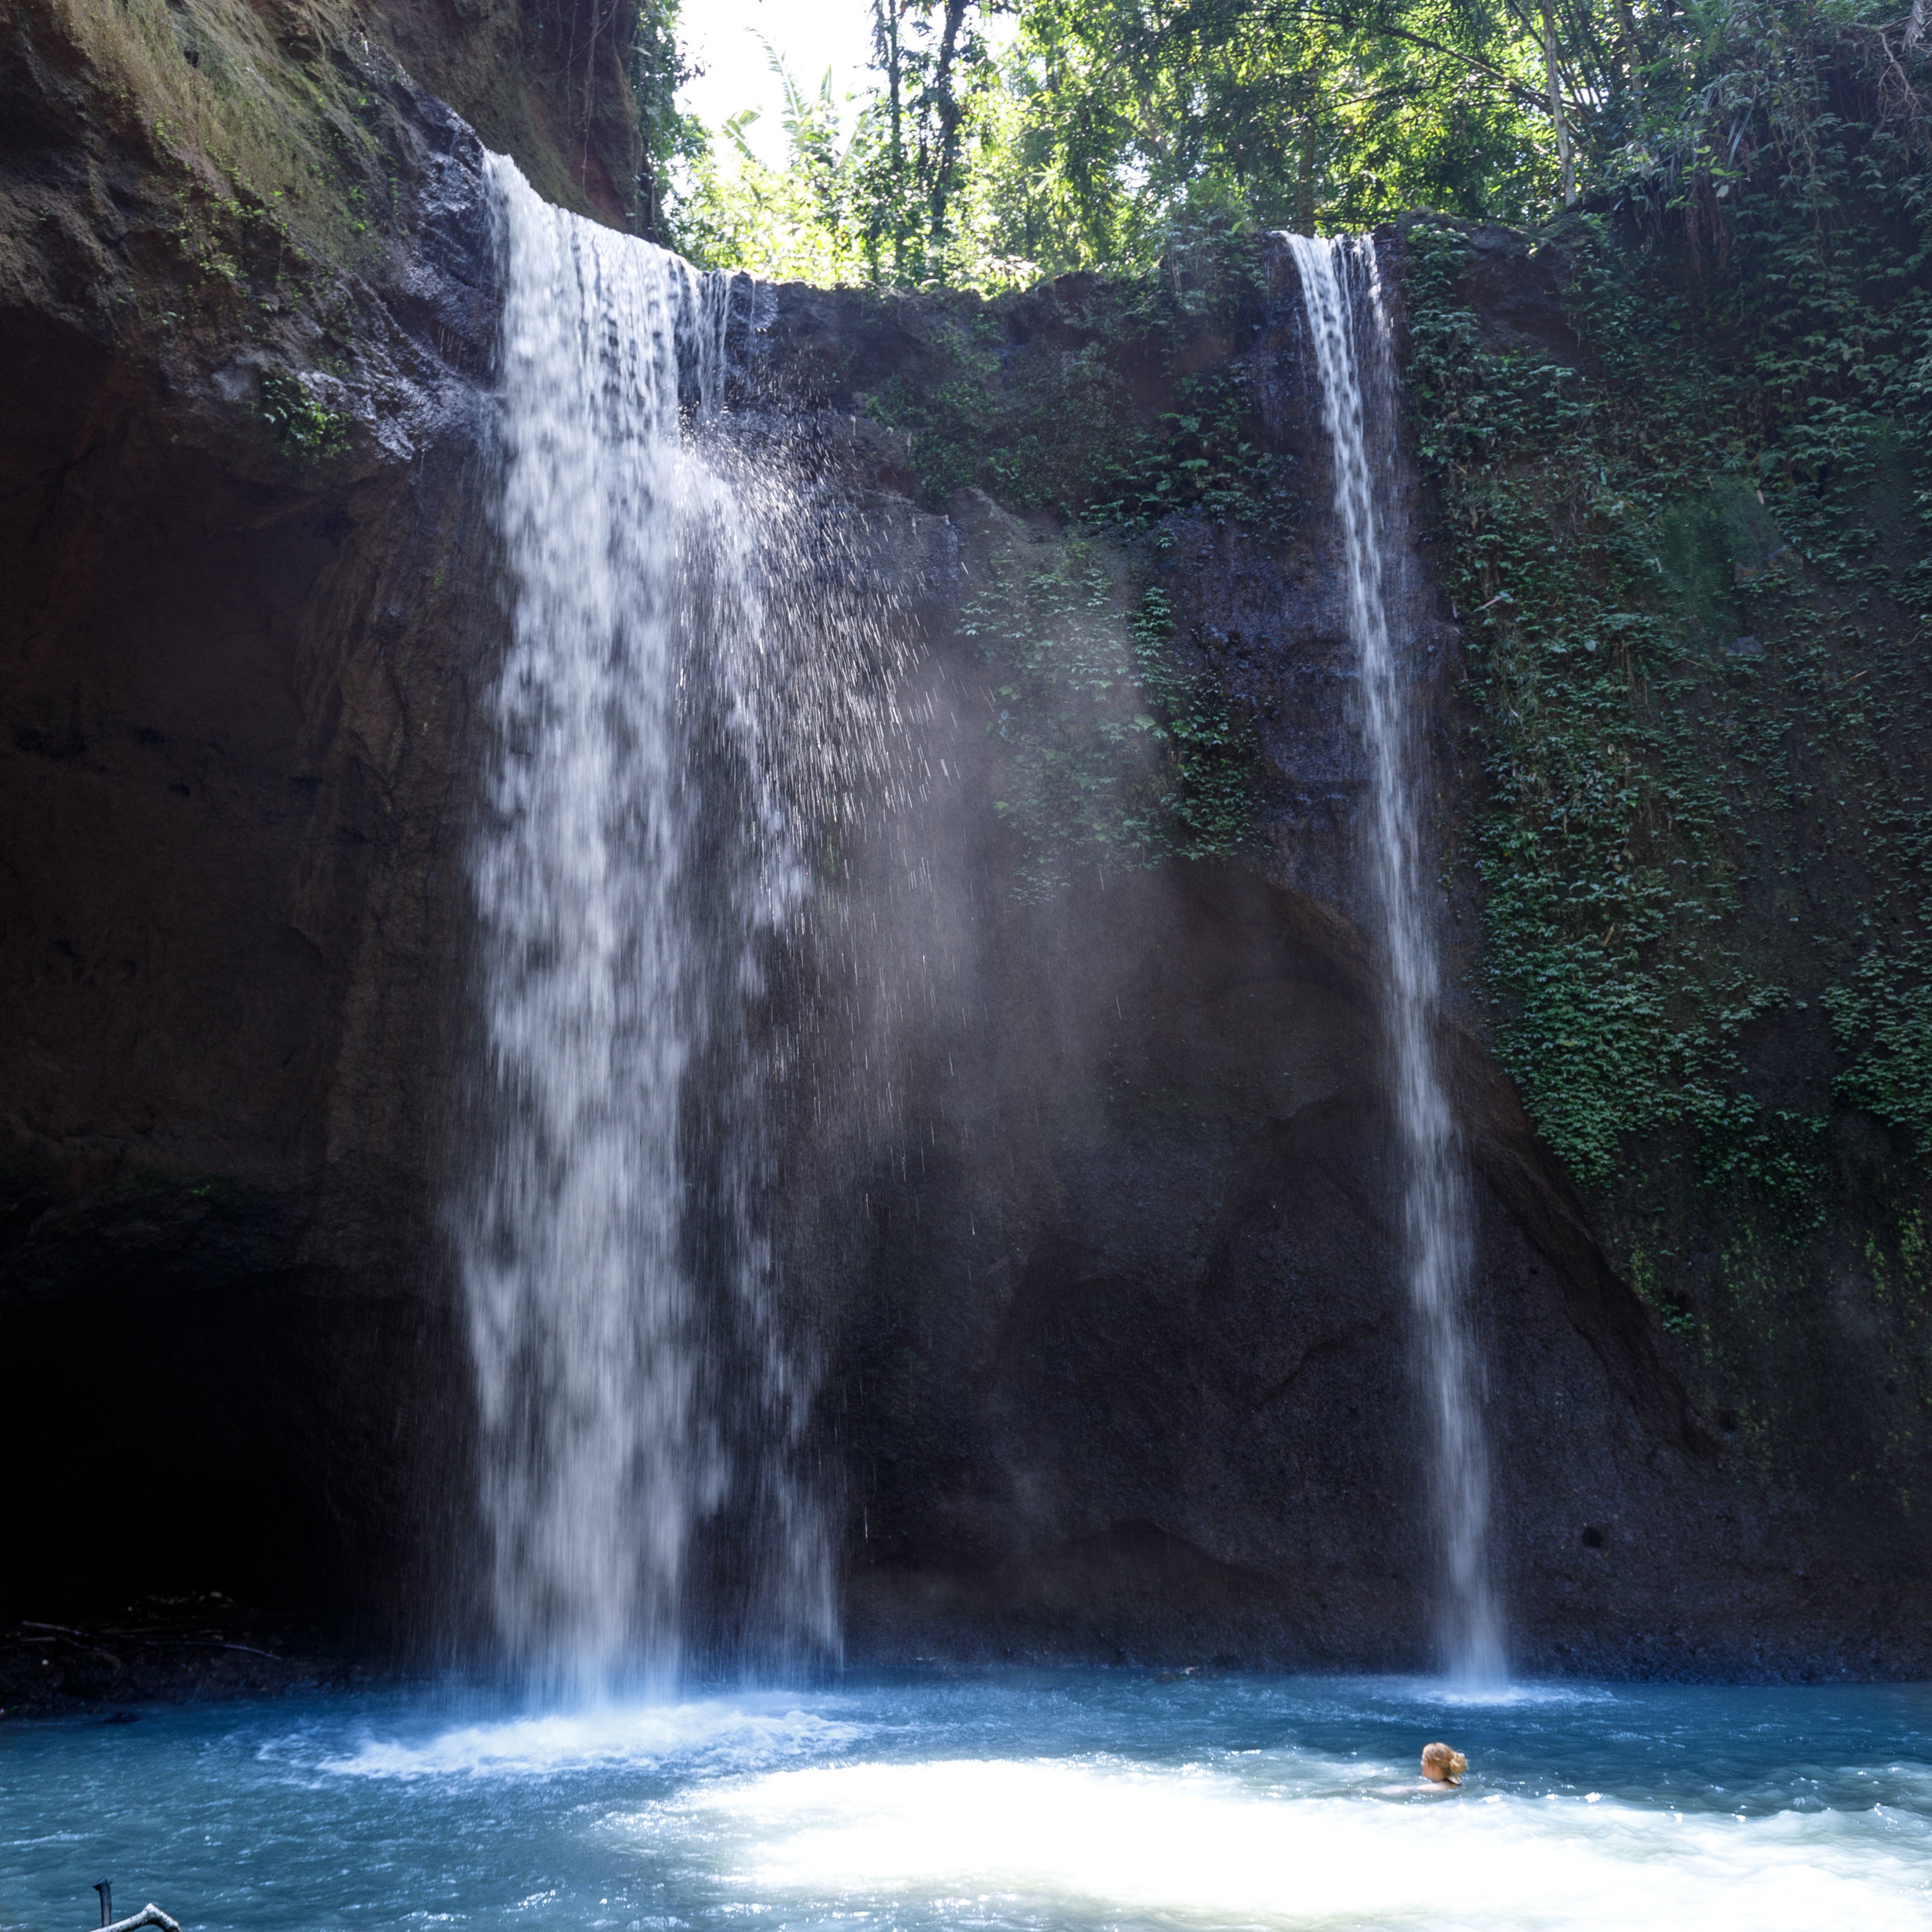 Best waterfalls in Bali: Tibumana Waterfall